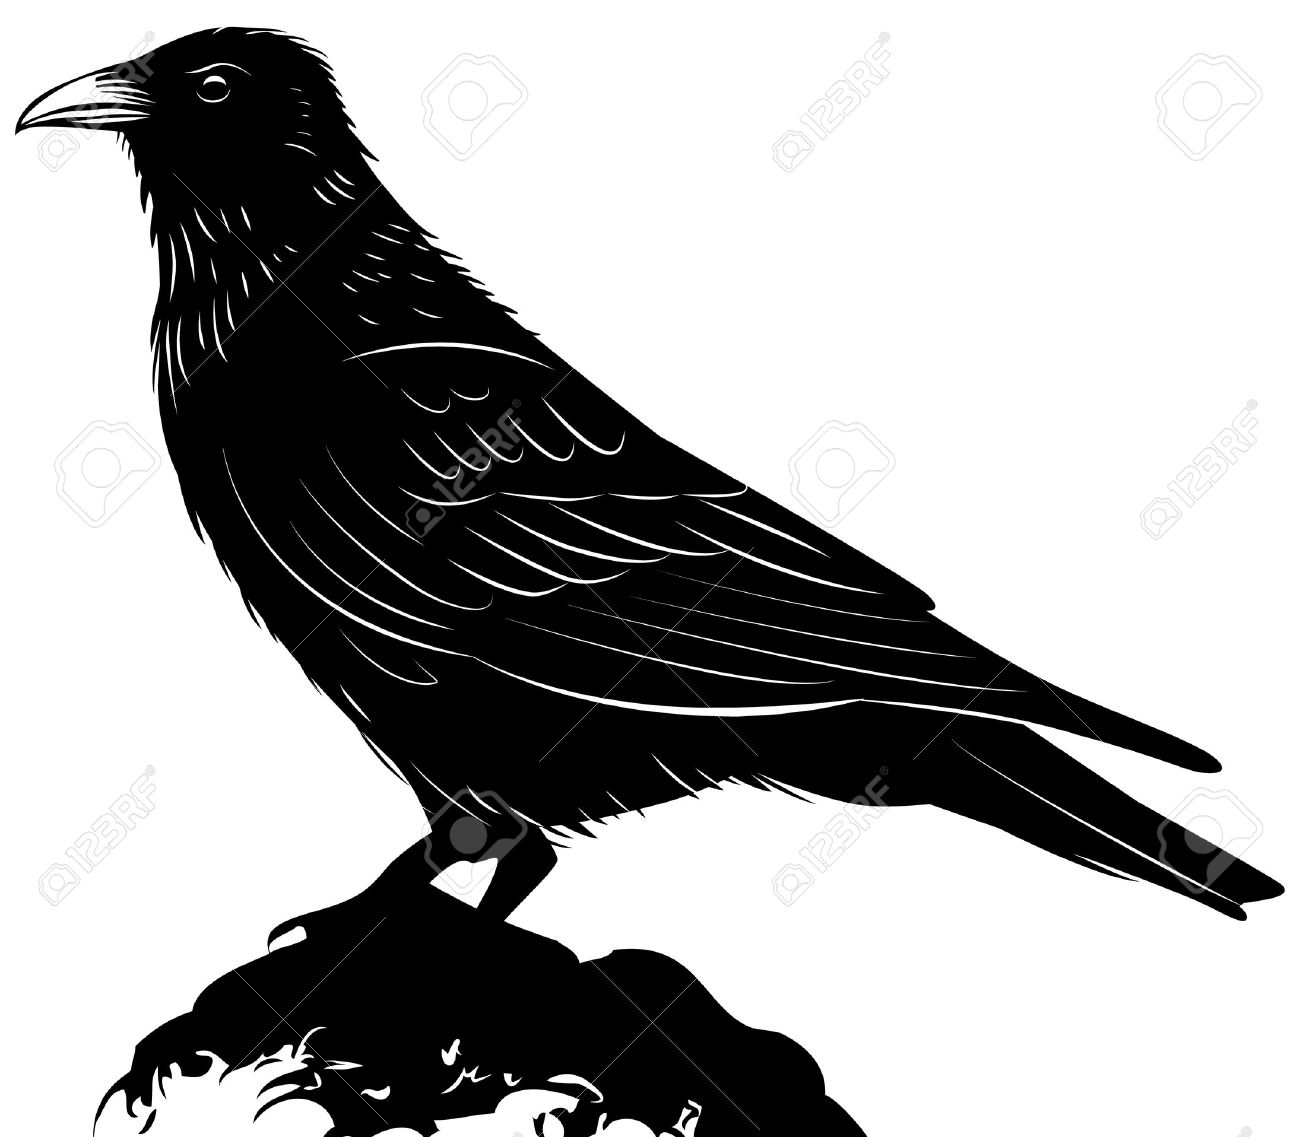 Raven clipart #11, Download drawings